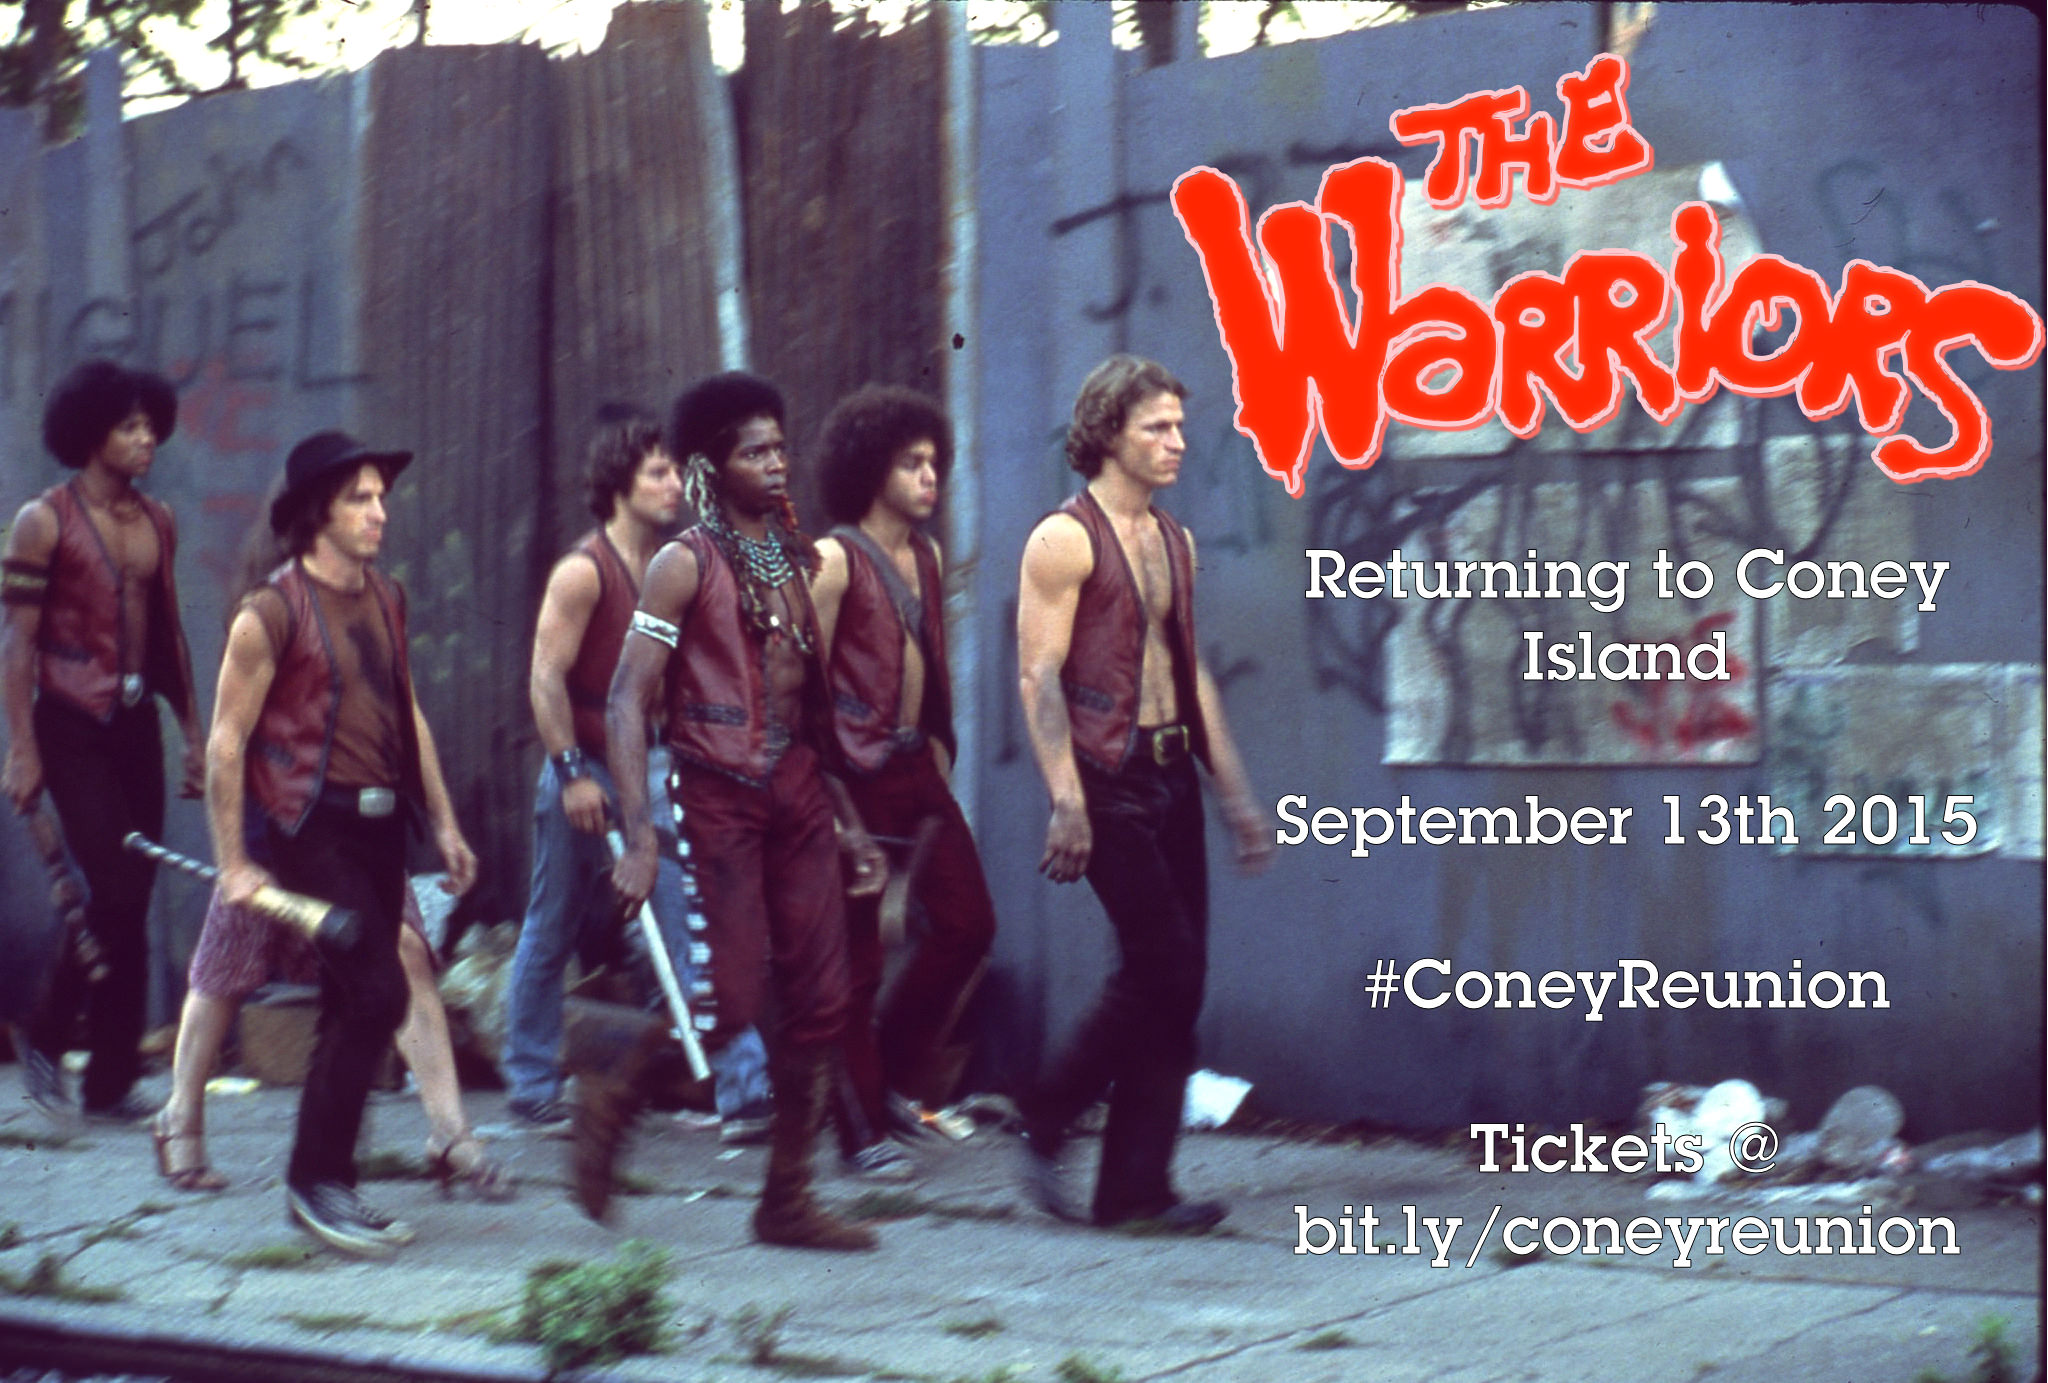 The Warriors Movie Site Is Going To Visit Coney Island!